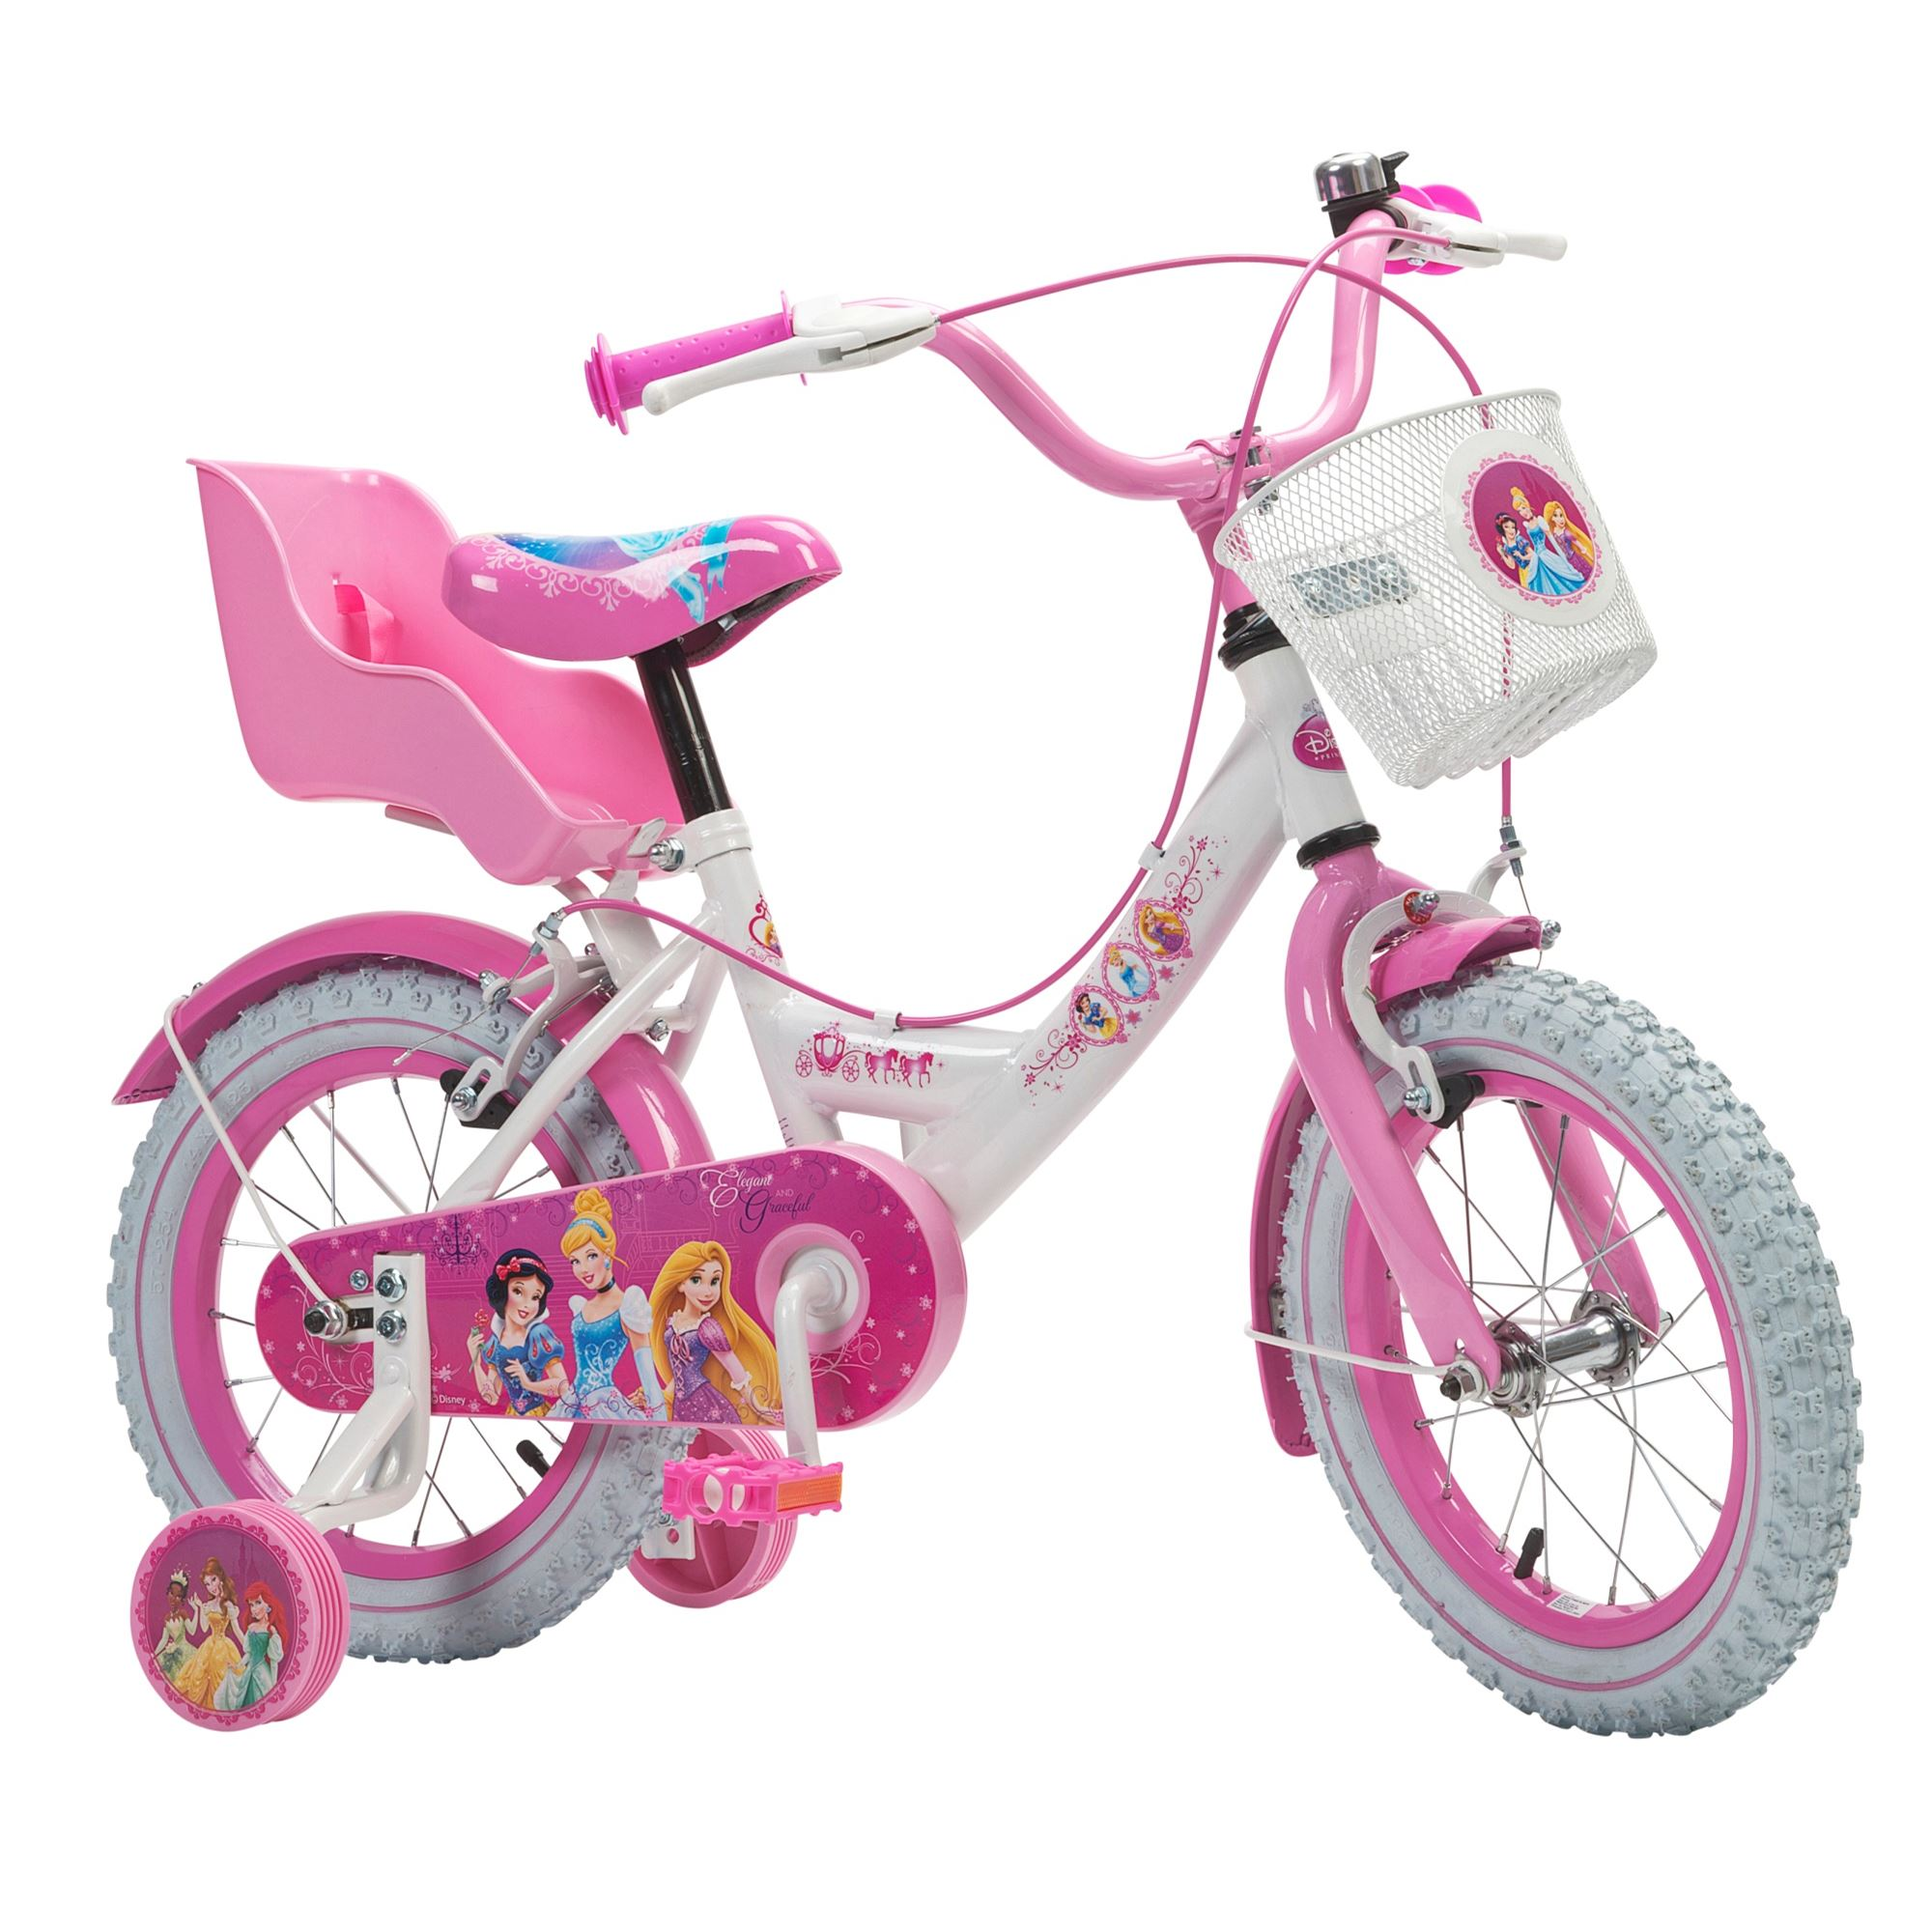 14in Disney Princess Bike 2014